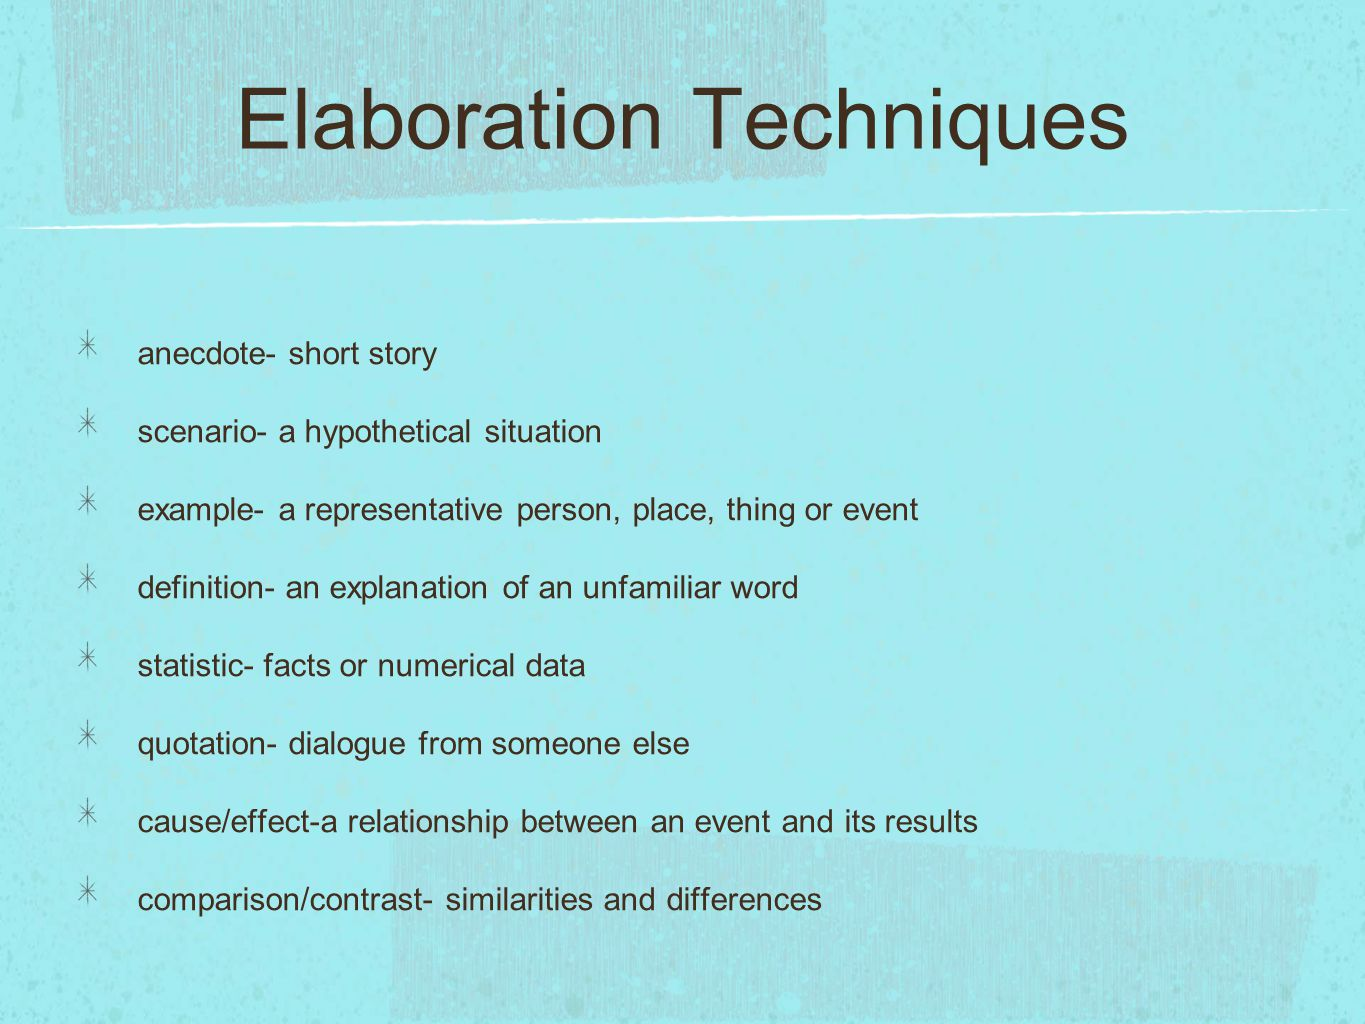 Elaboration Techniques anecdote- short story scenario- a hypothetical situation example- a representative person, place, thing or event definition- an explanation of an unfamiliar word statistic- facts or numerical data quotation- dialogue from someone else cause/effect-a relationship between an event and its results comparison/contrast- similarities and differences